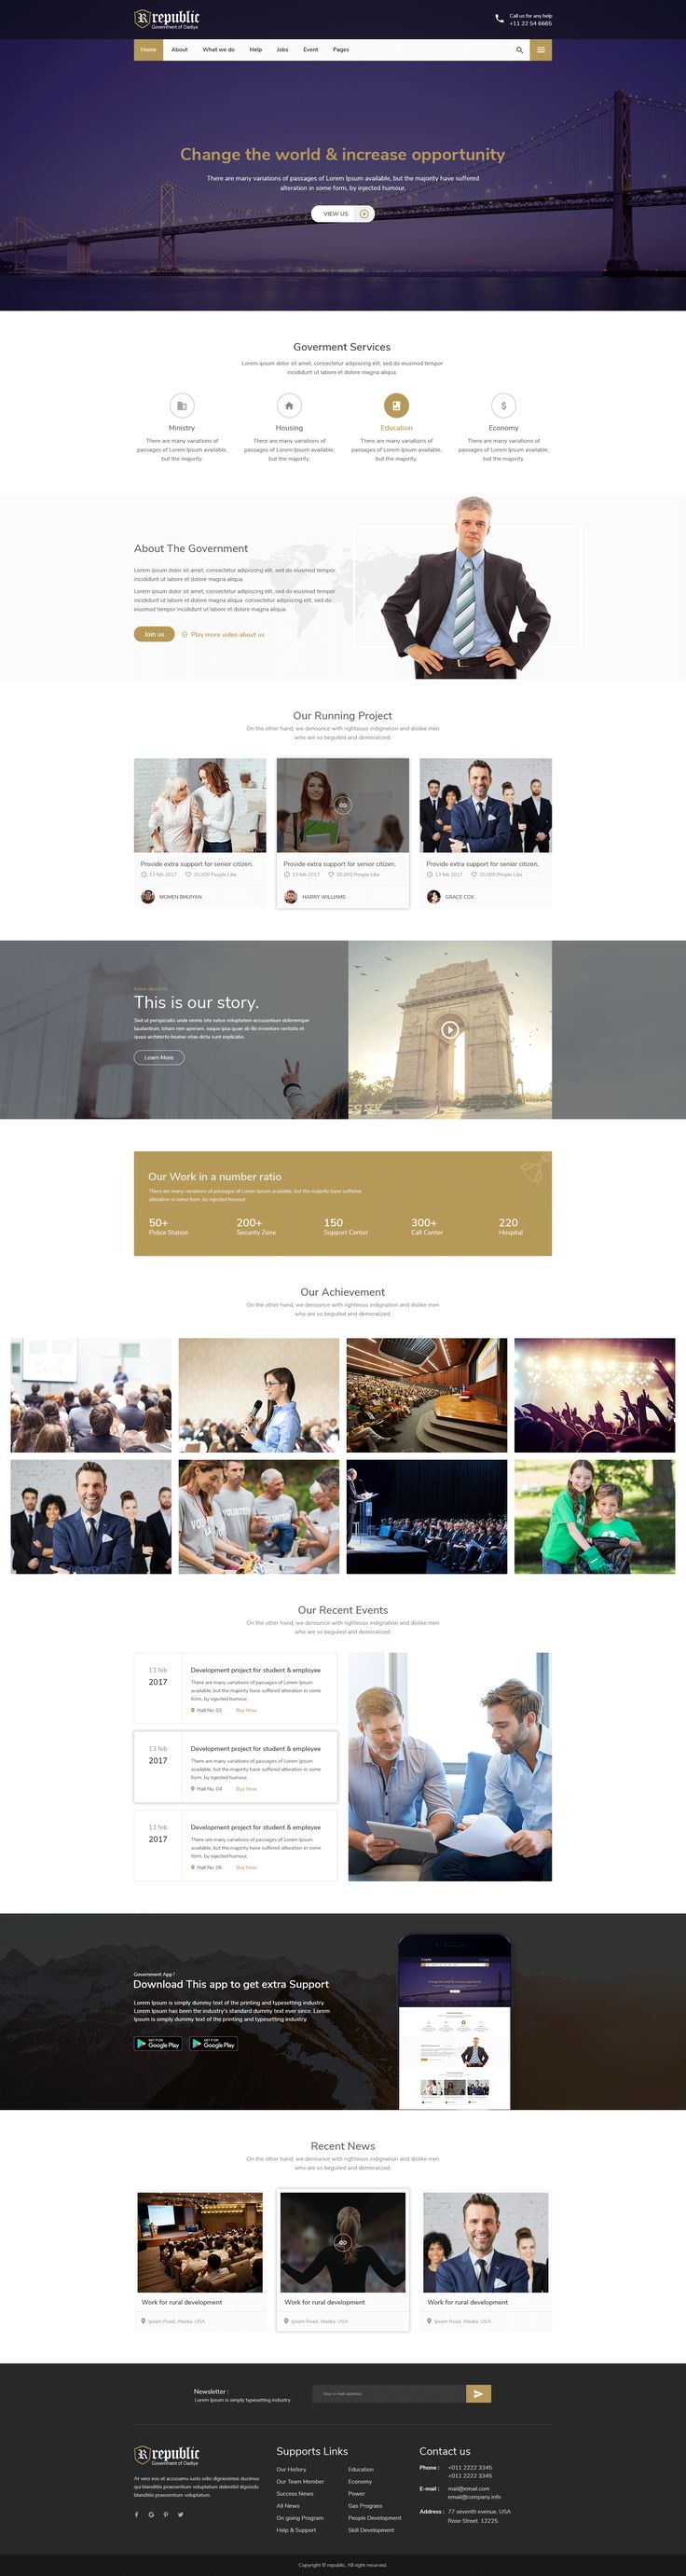 Republic - Responsive Government HTML Template ------ #city,# city #government, #corporate, #event #management, #government, #government #agency, #layer #slider, #Local #Government, #mayor, #ngo, #political, #politician, #politics, #projects, #town